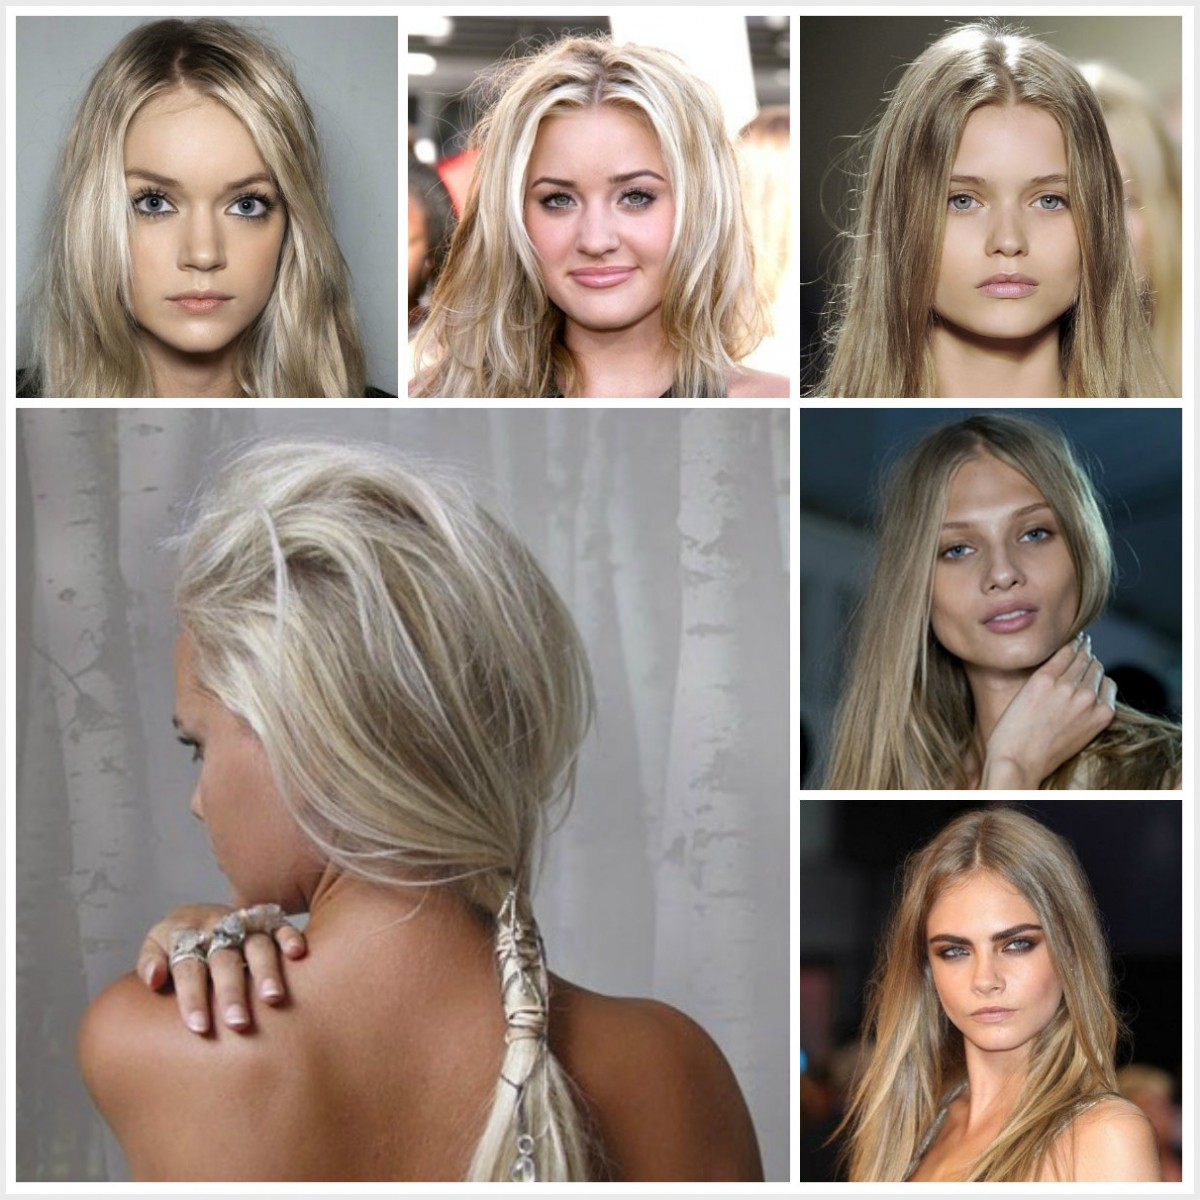 best hair color ideas New Year Best Hair Color Ideas 2019 ash blonde hair color ideas for 2019 hairstyles for women 2019